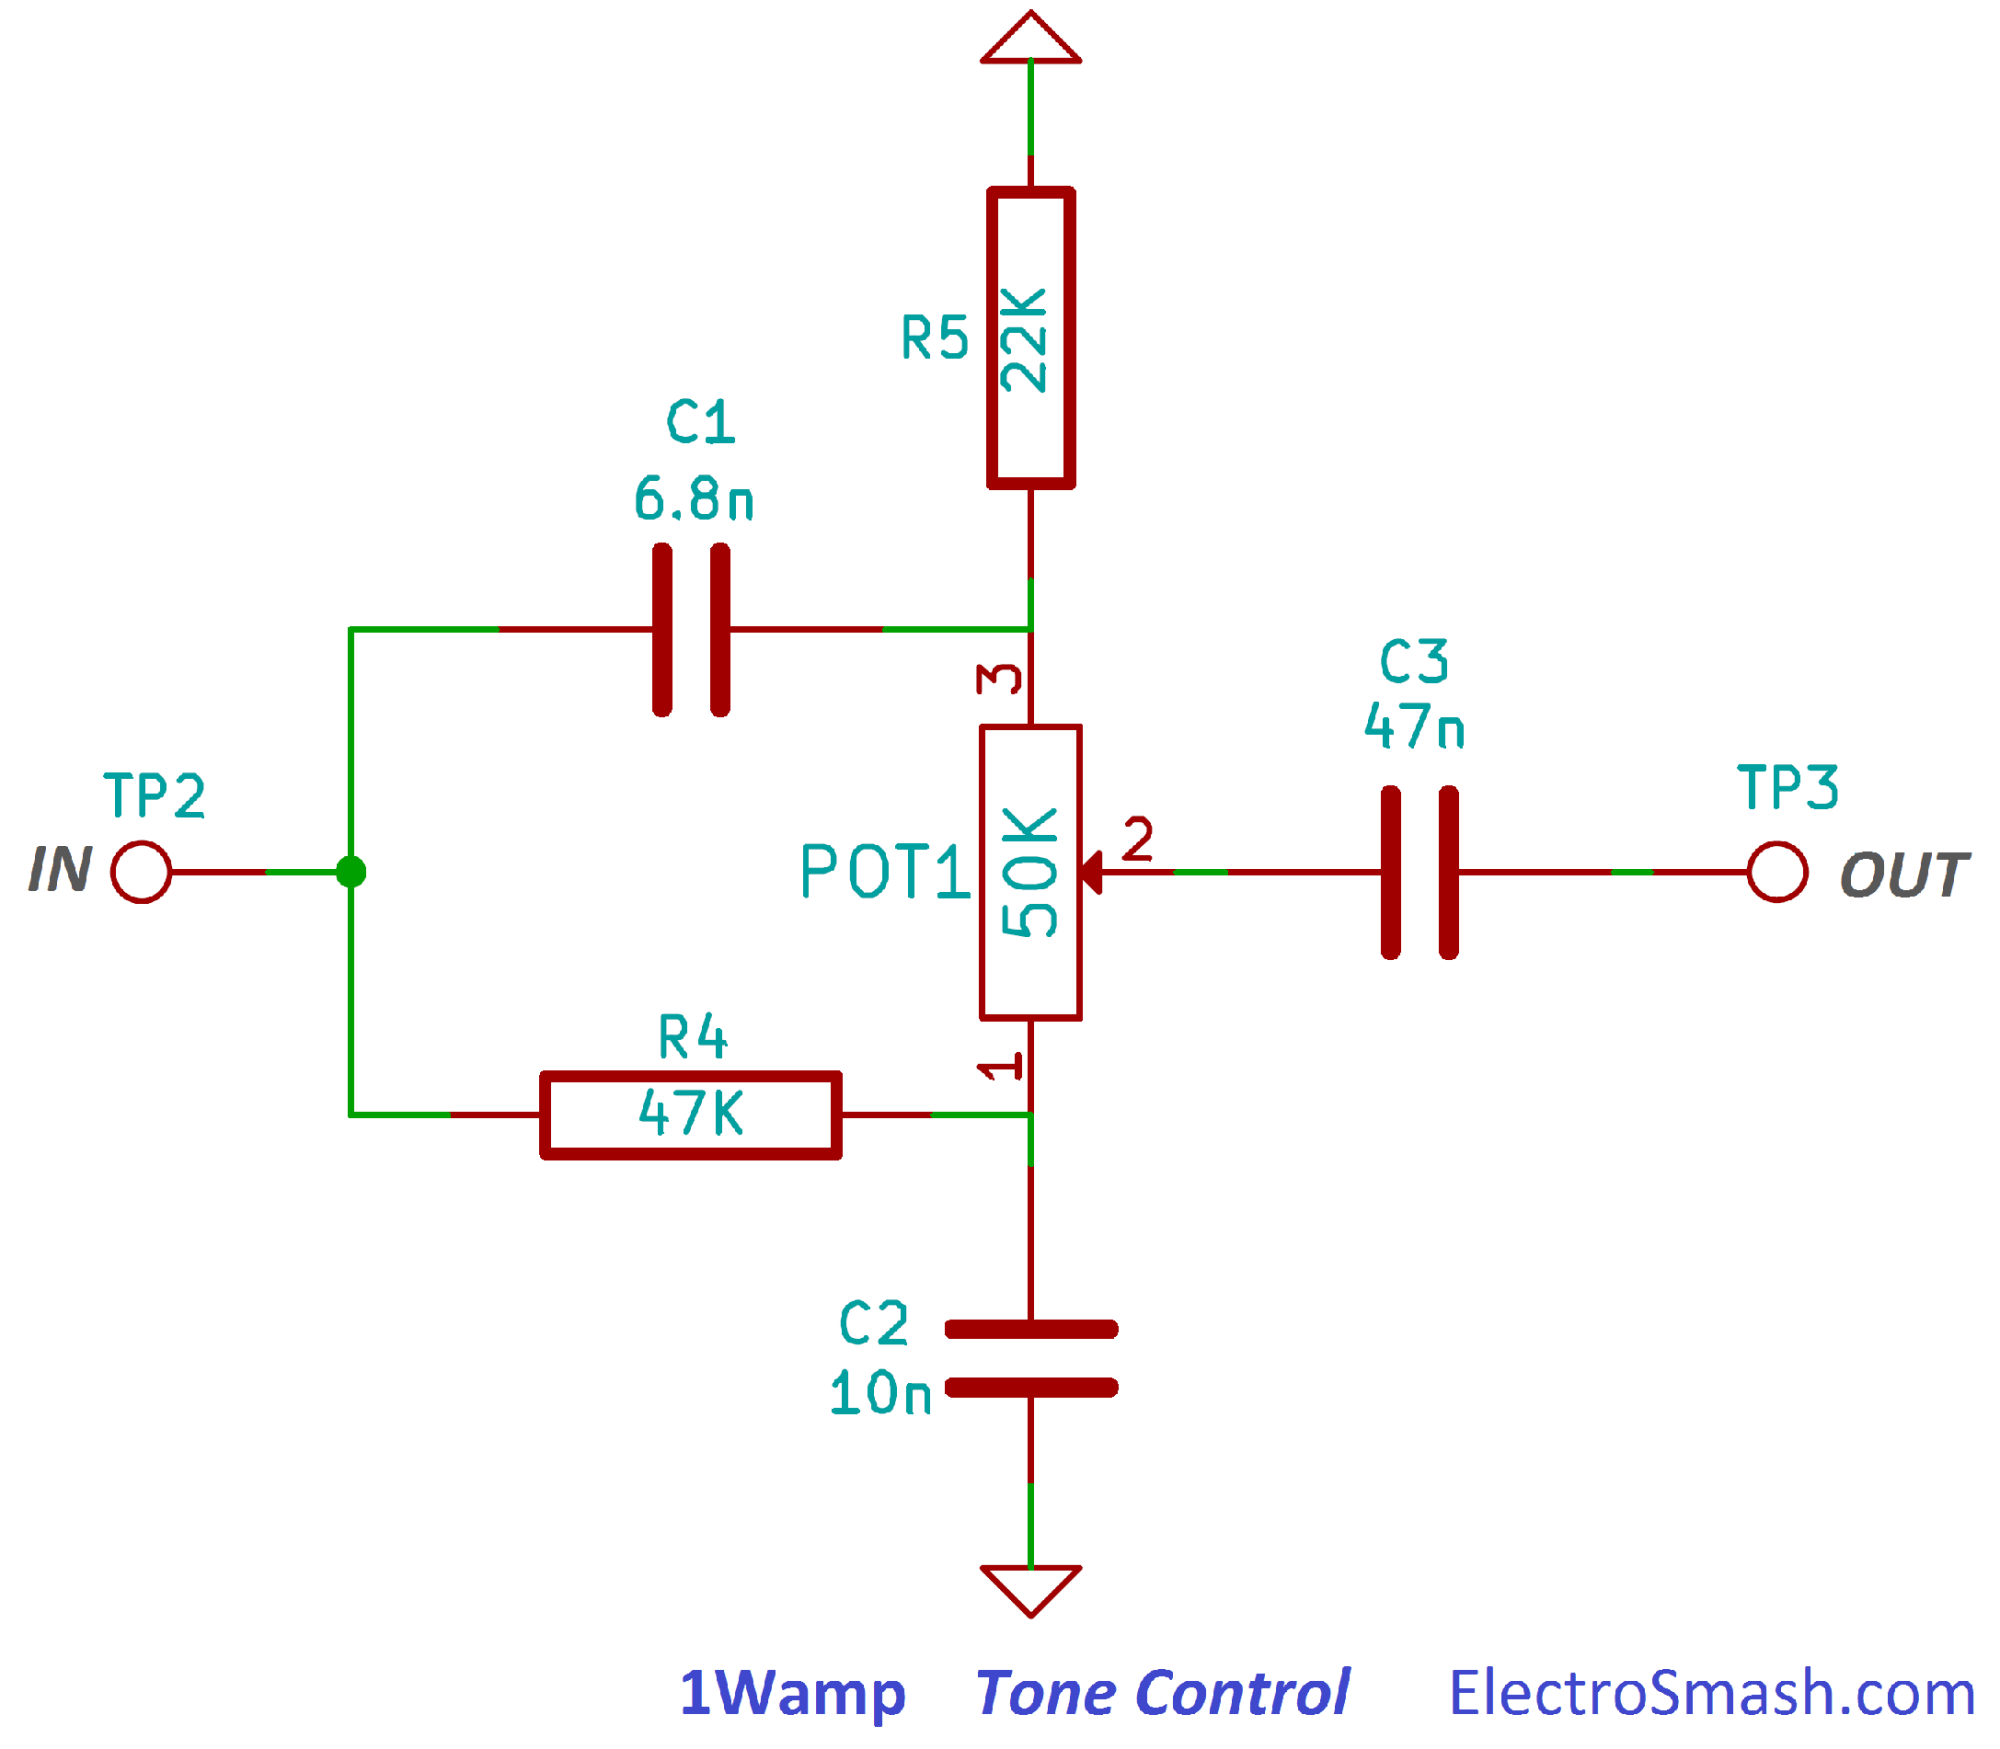 hight resolution of 1wamp tone control circuit